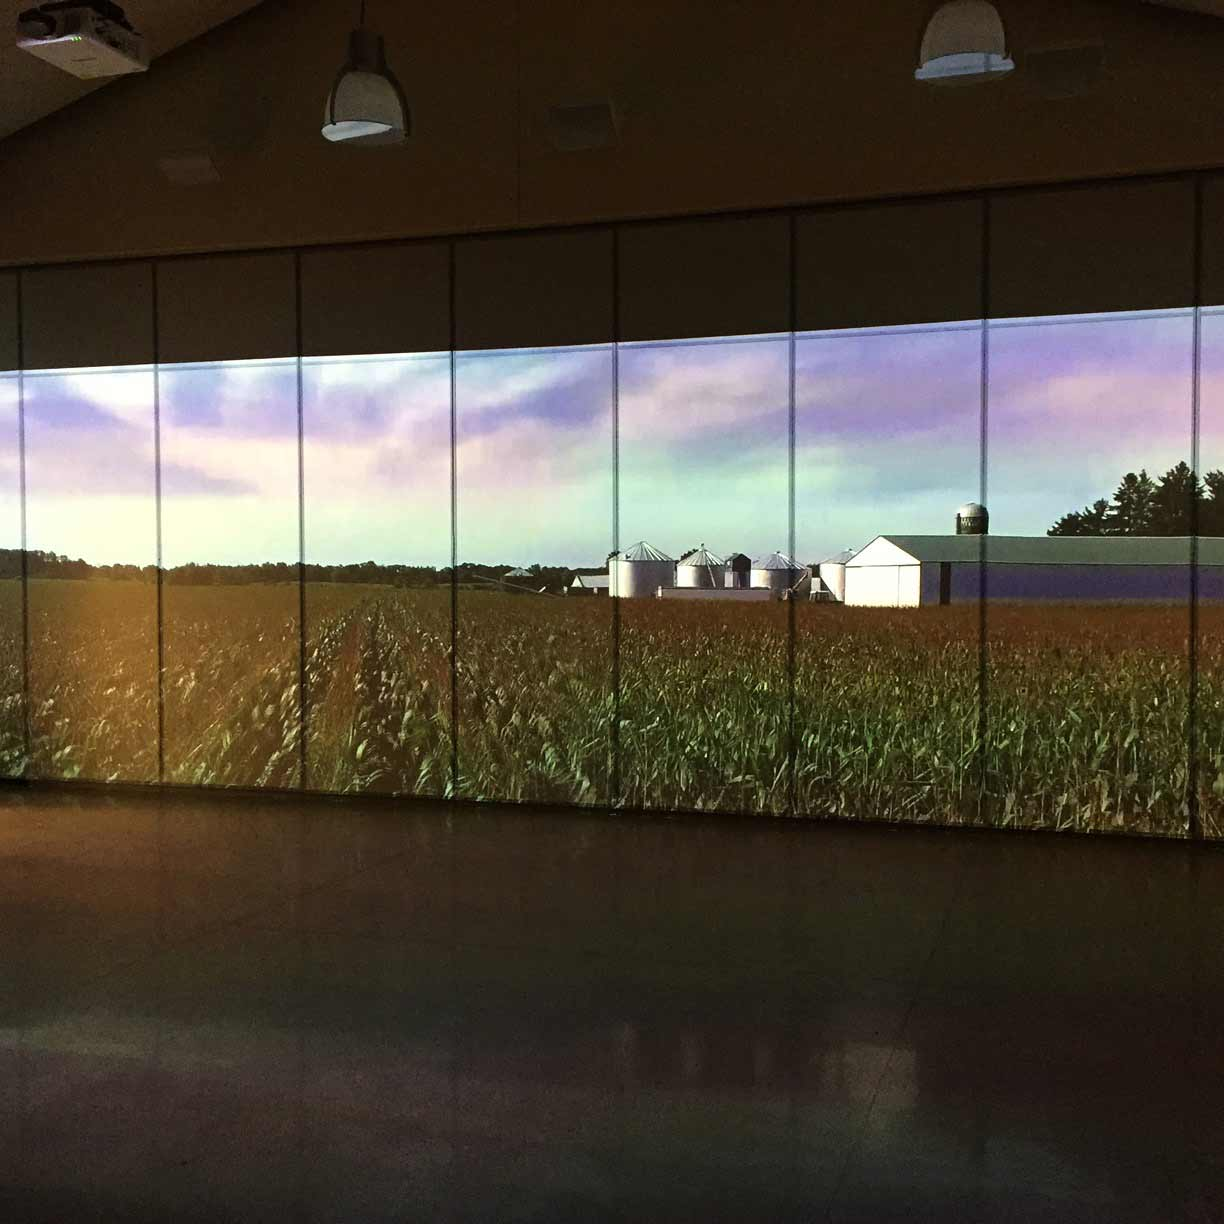 A dark room with a farm scene on a multi-panel screen